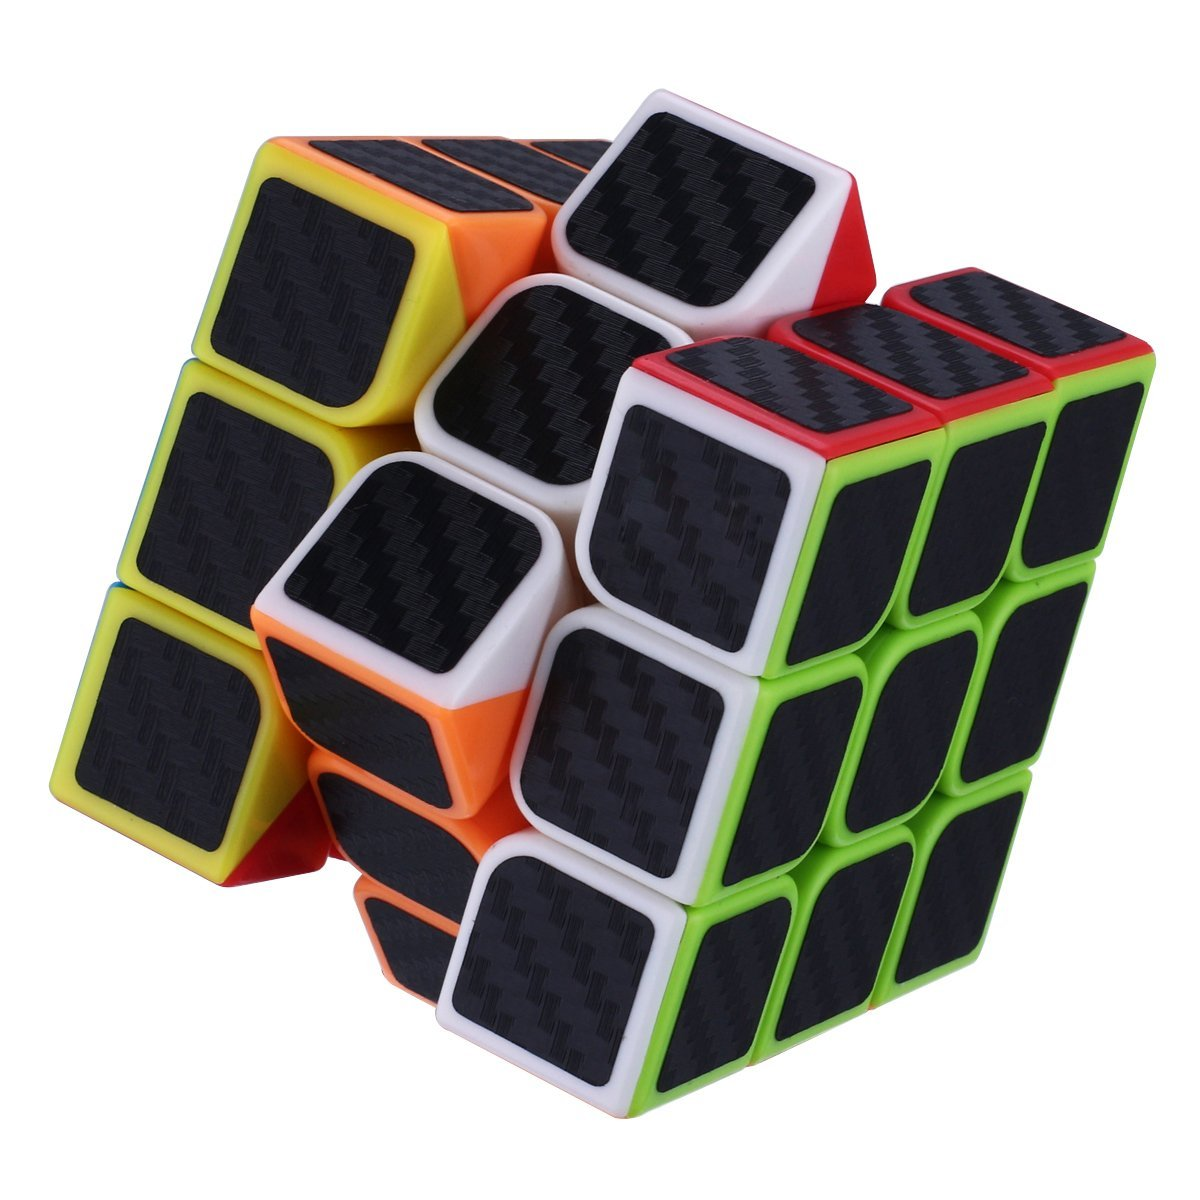 Dreampark 3x3x3 Speed Cube Carbon Fiber Sticker for Smooth Magic Cube Puzzles